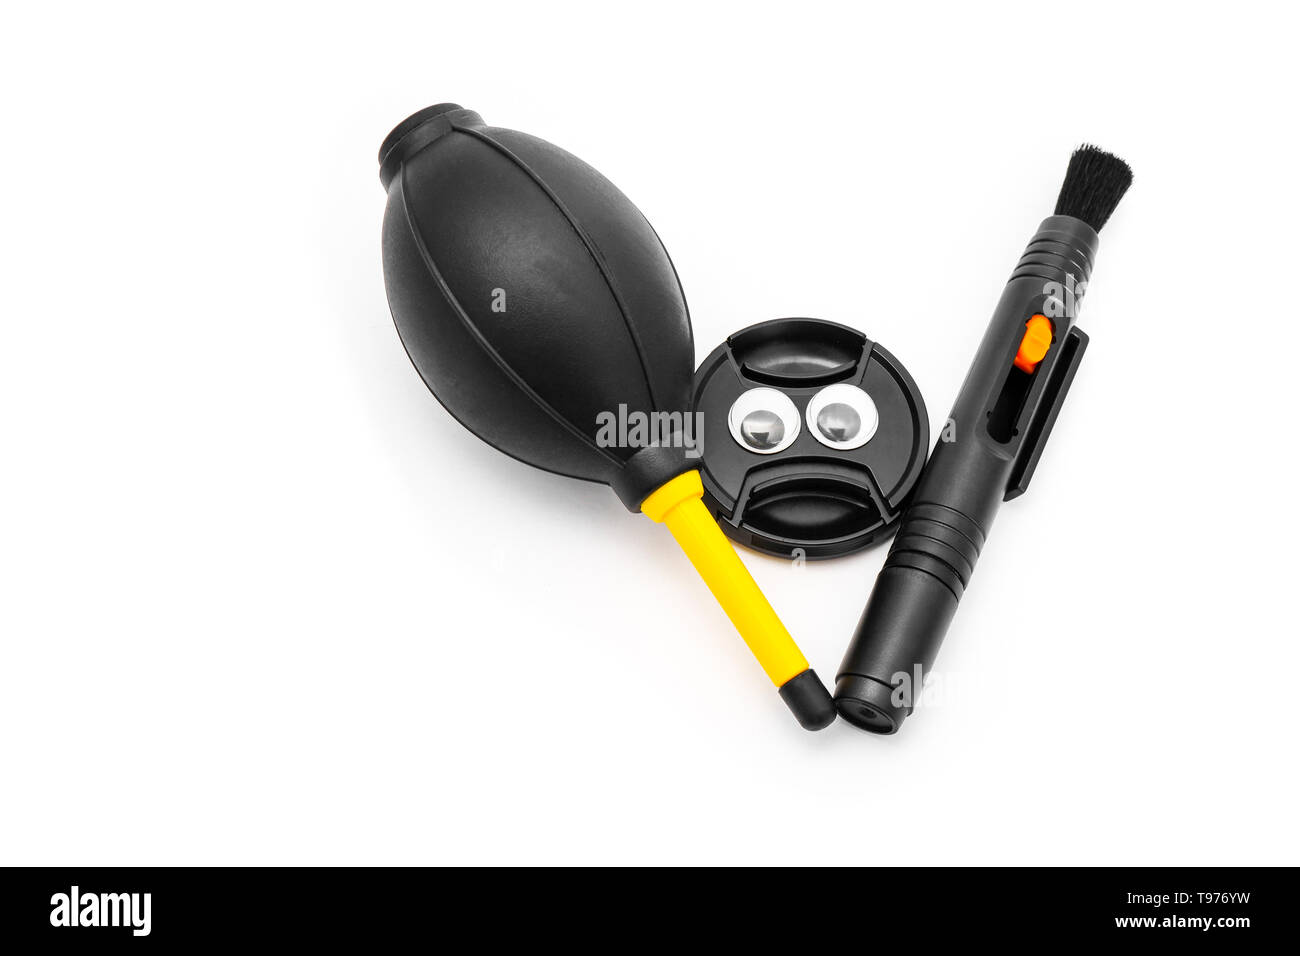 Lens Cover Face with Googly Eyes and Camera Cleaning Set Isolated on a White Background with Clipping Path. Closeup Lens Pen, Blower Brush and Lens. Stock Photo